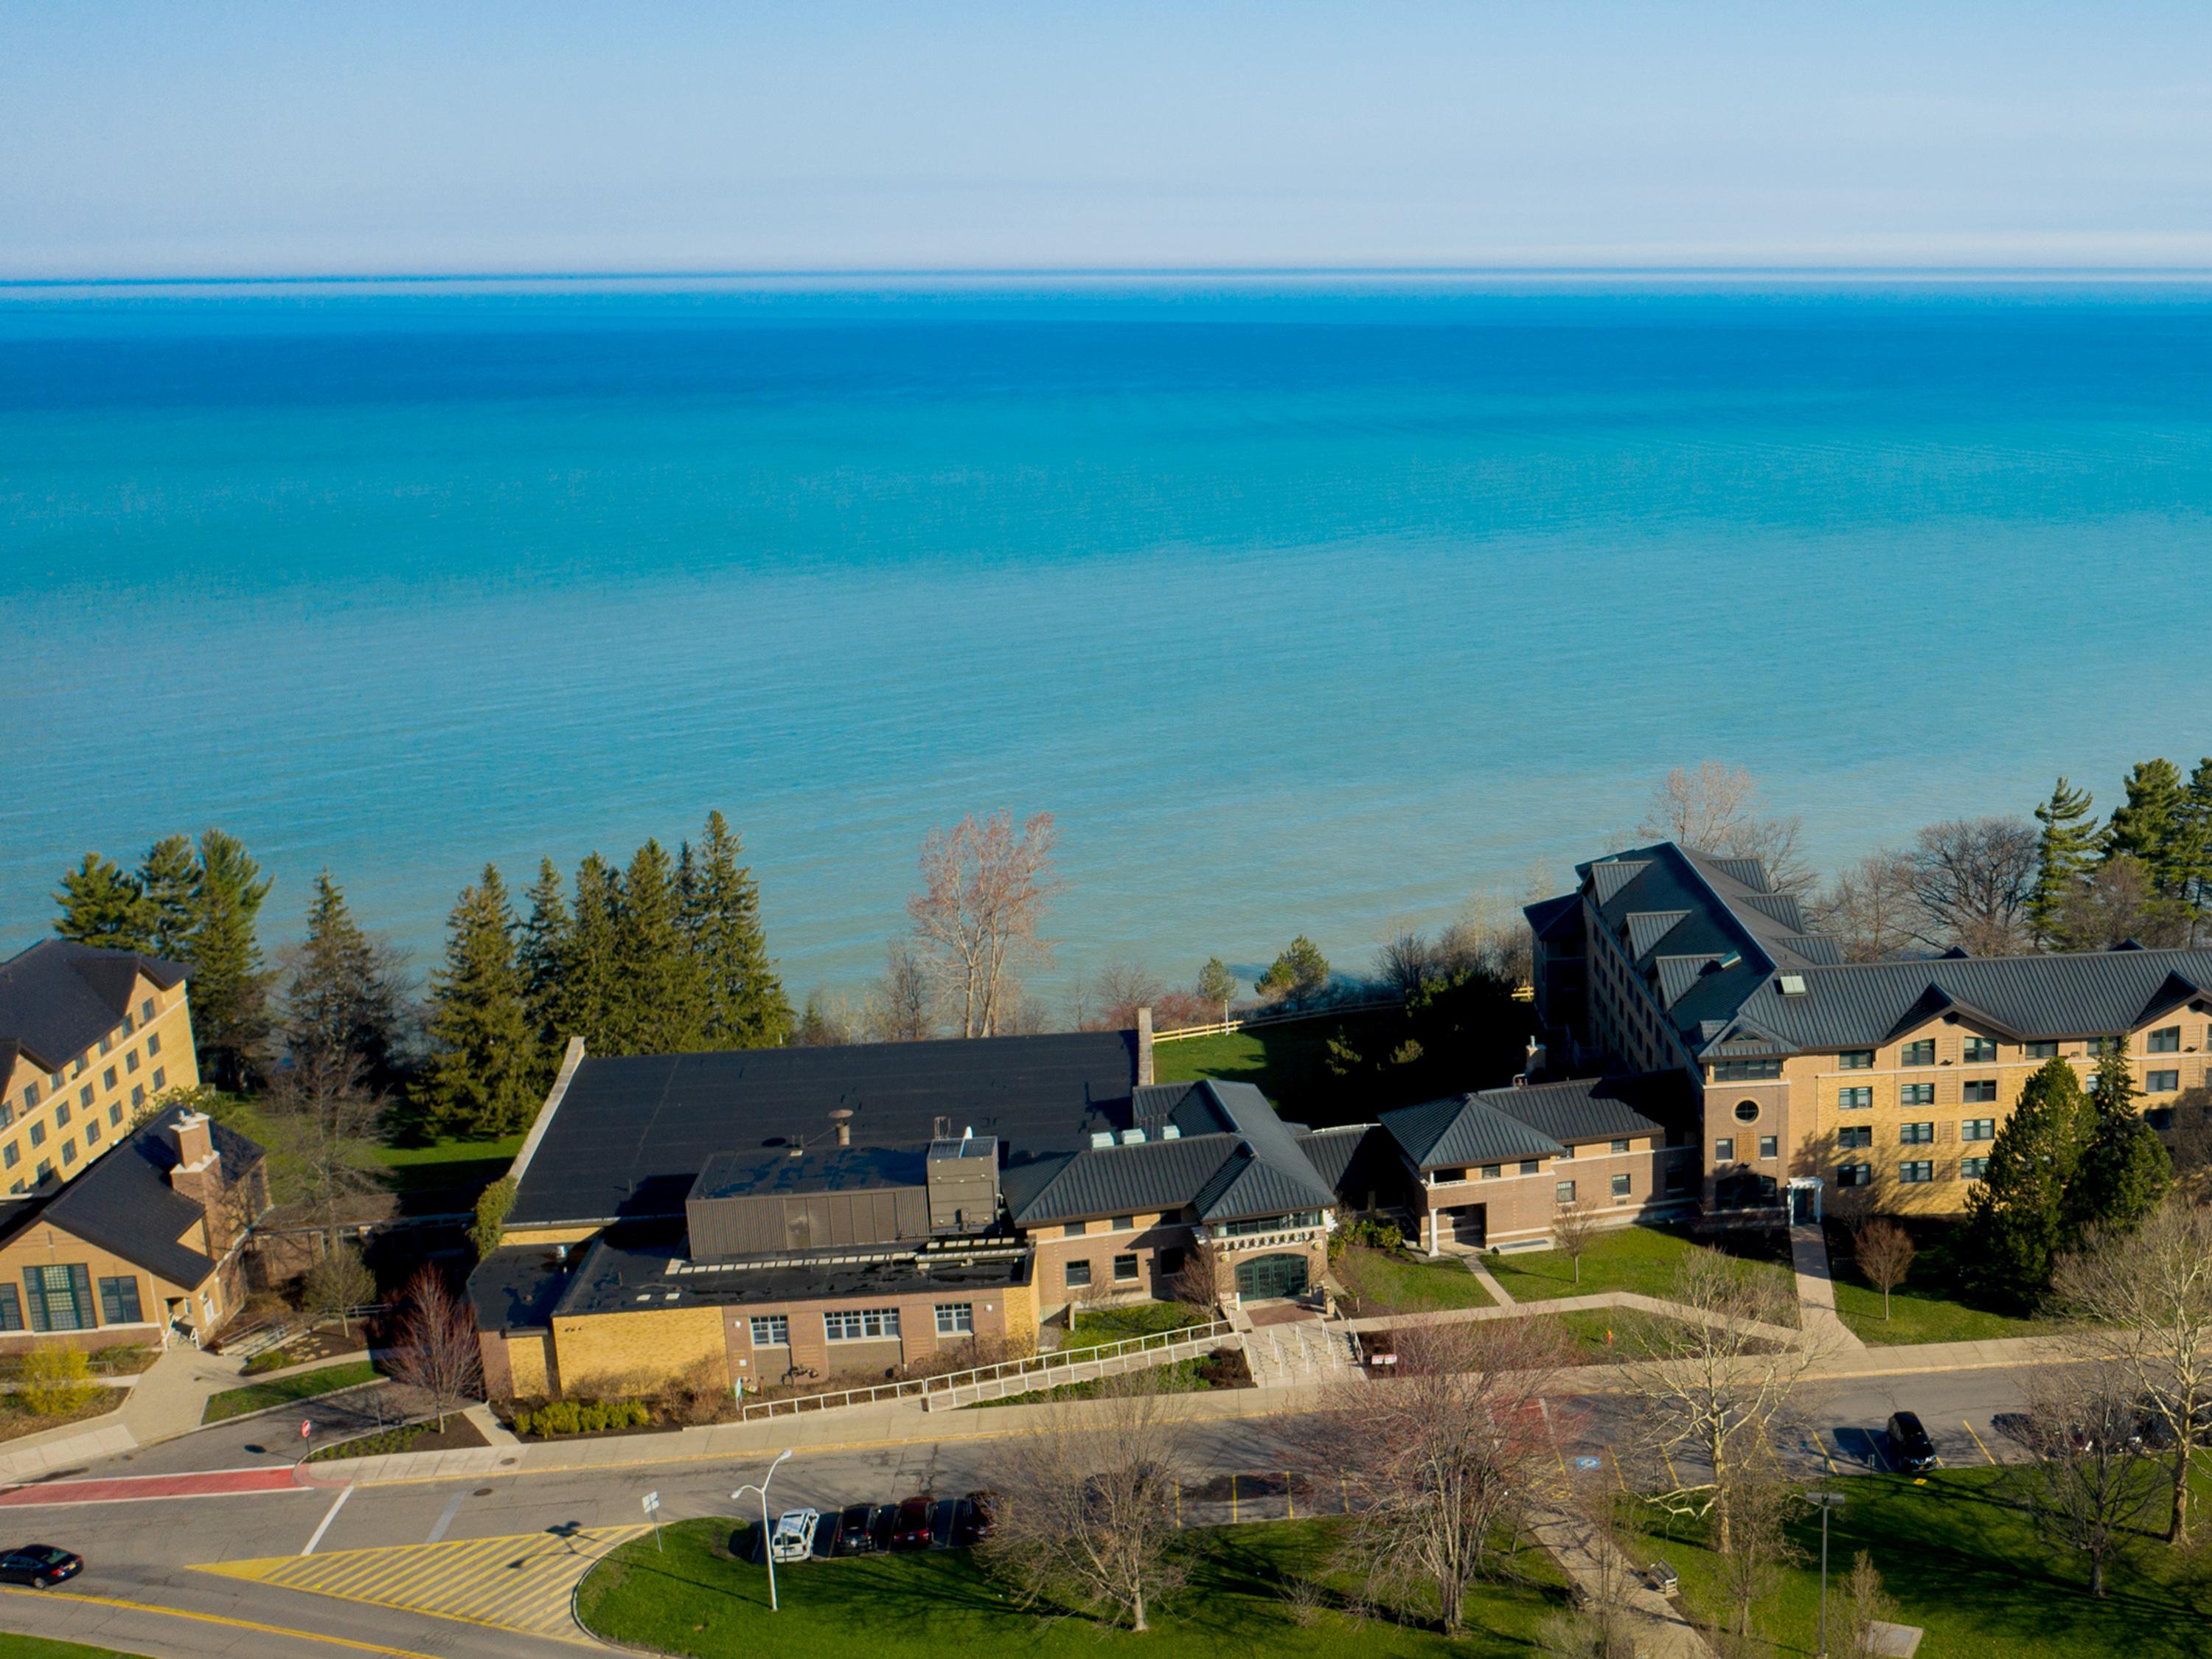 Aerial view of Lake Ontario and campus buildings